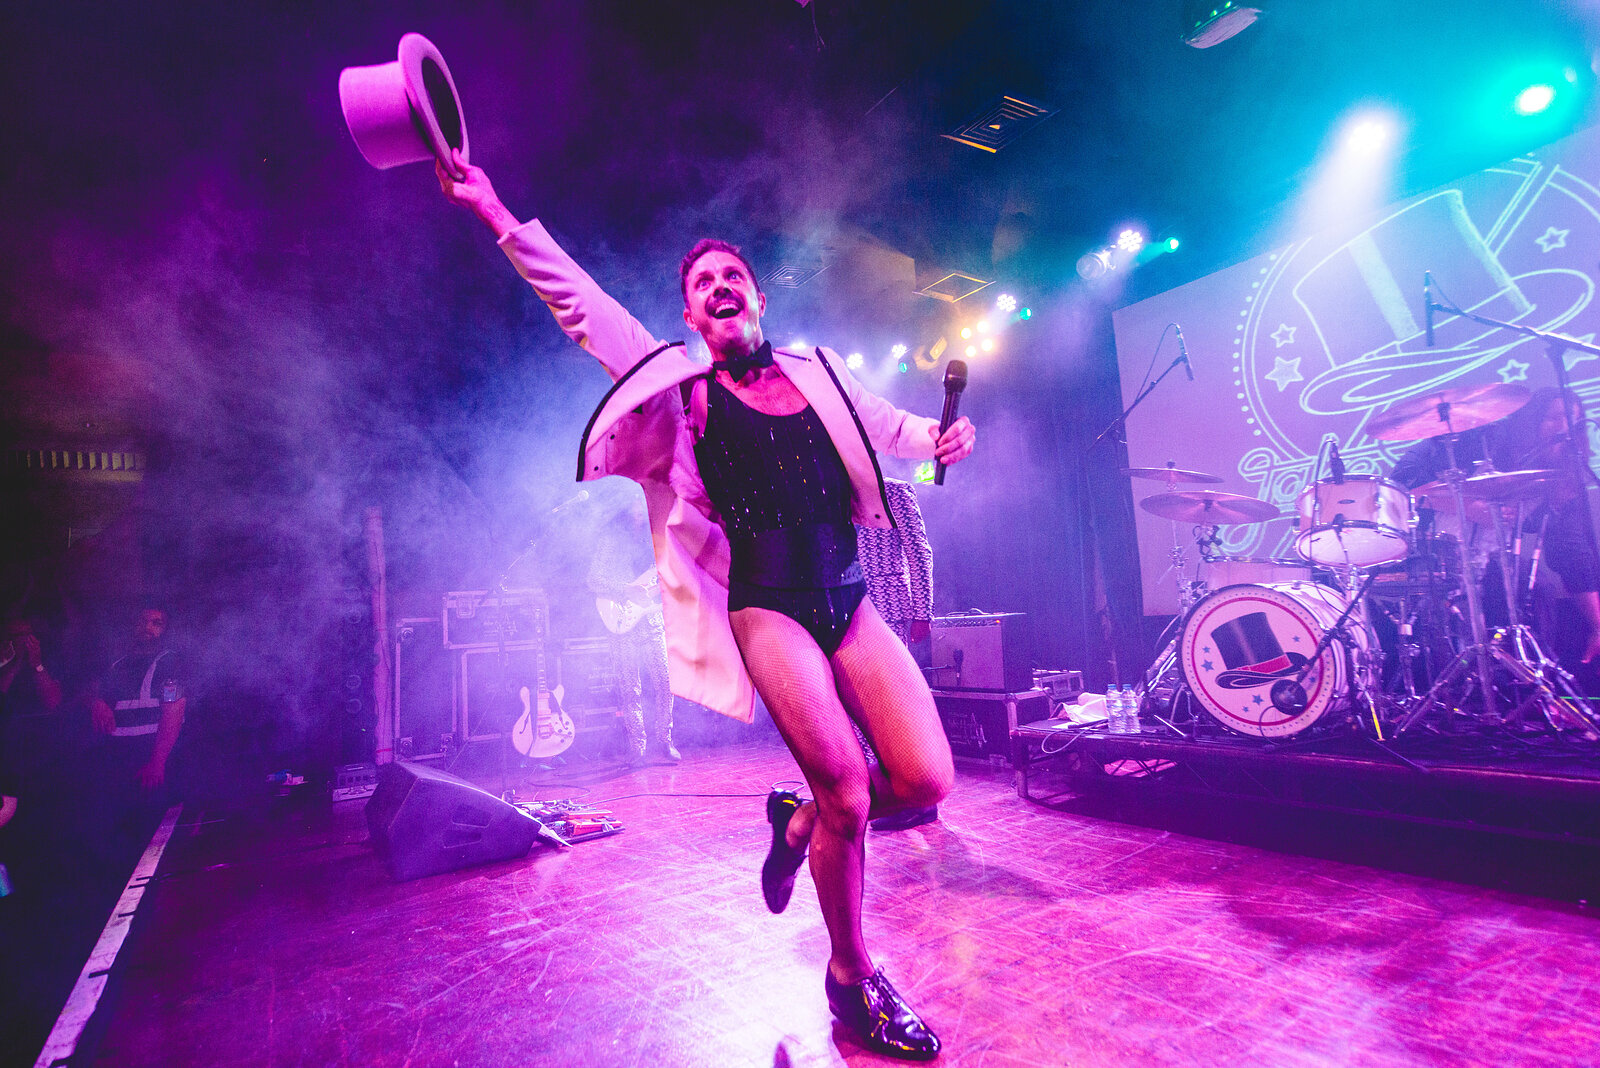 Jake Shears at the Scala, London, August 2018